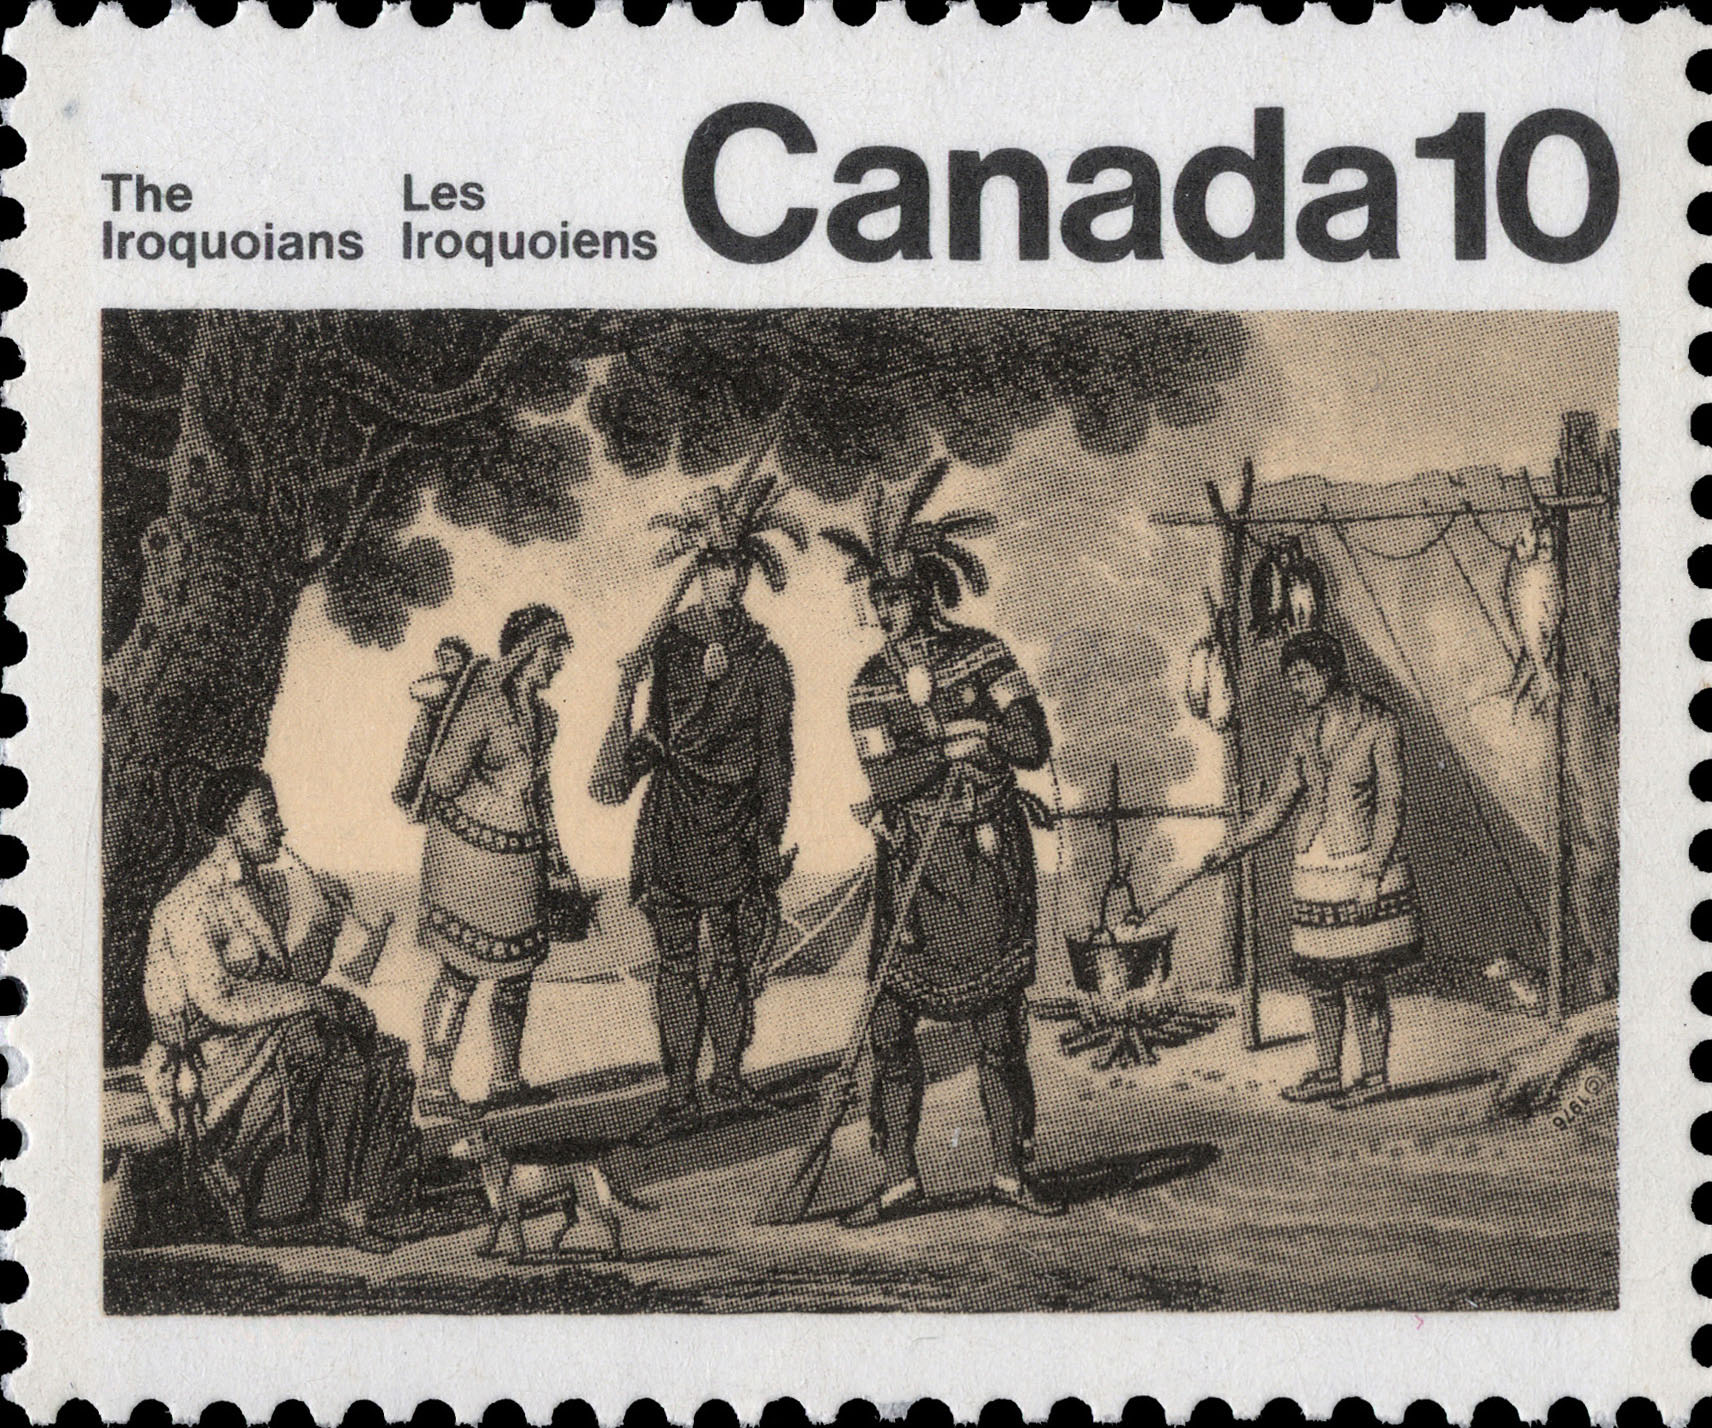 Iroquoian Encampment Canada Postage Stamp | Indians of Canada, The Iroquoians